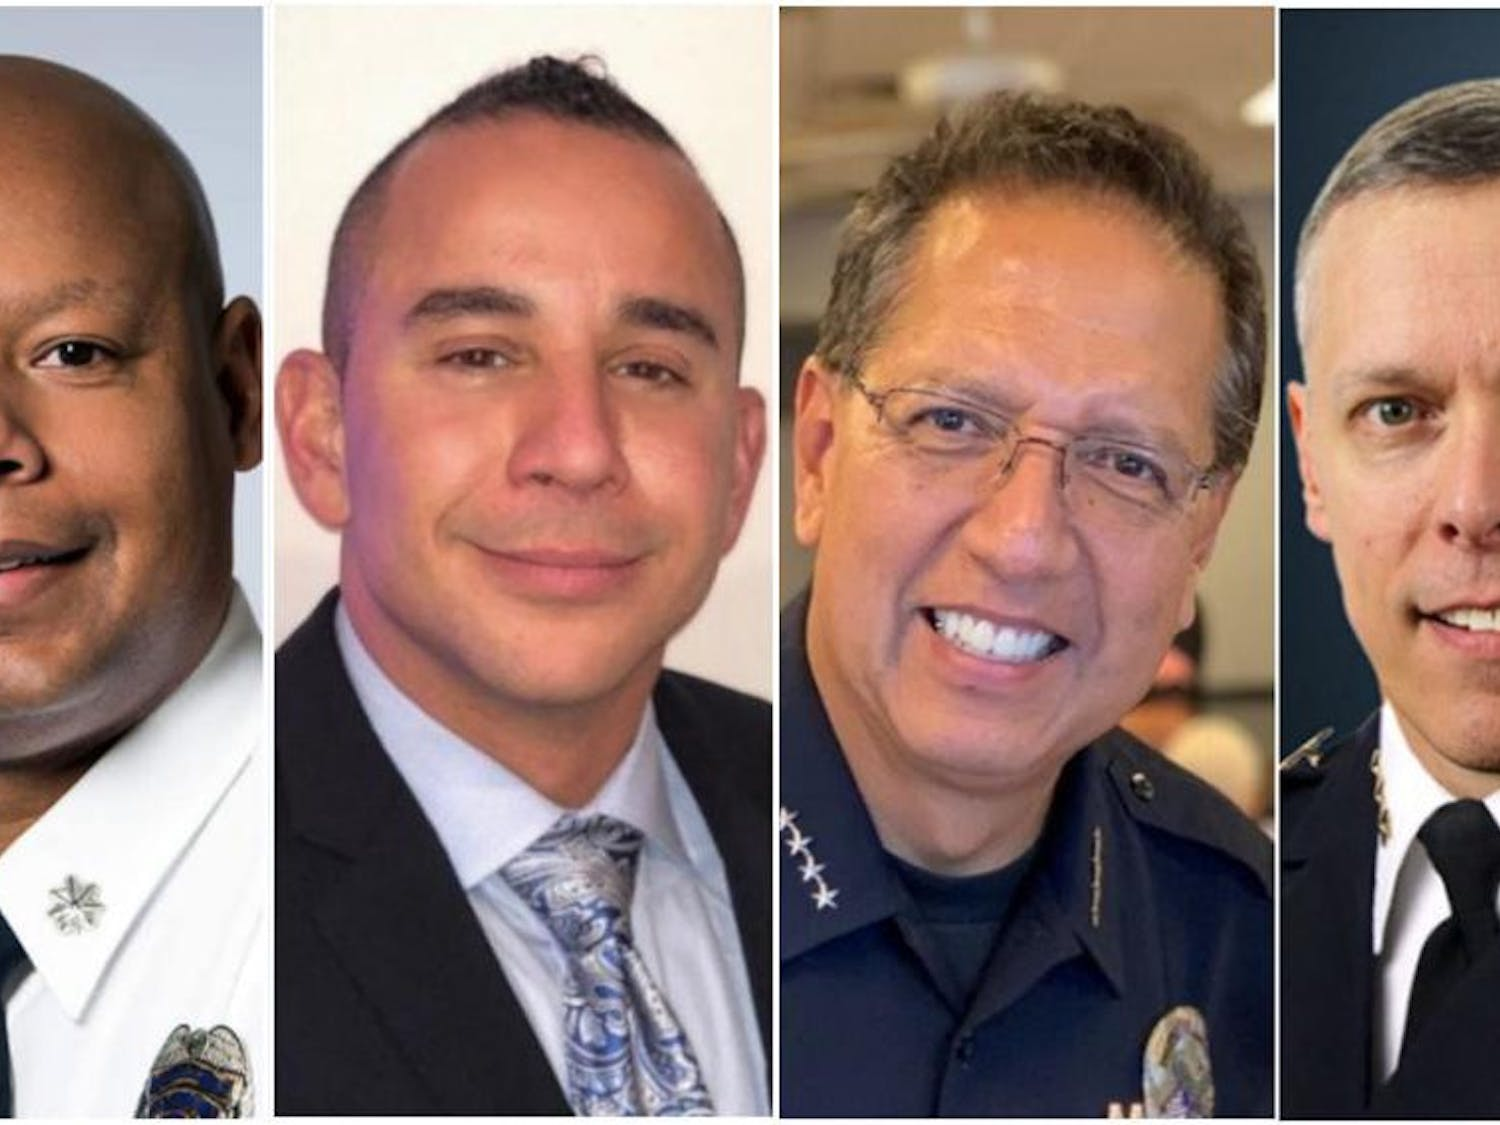 Residents criticized the selection process and certain finalists in the running to be the Madison Police Department's next Police Chief, following a summer of social justice demonstrations that often caused friction between community members and the police.